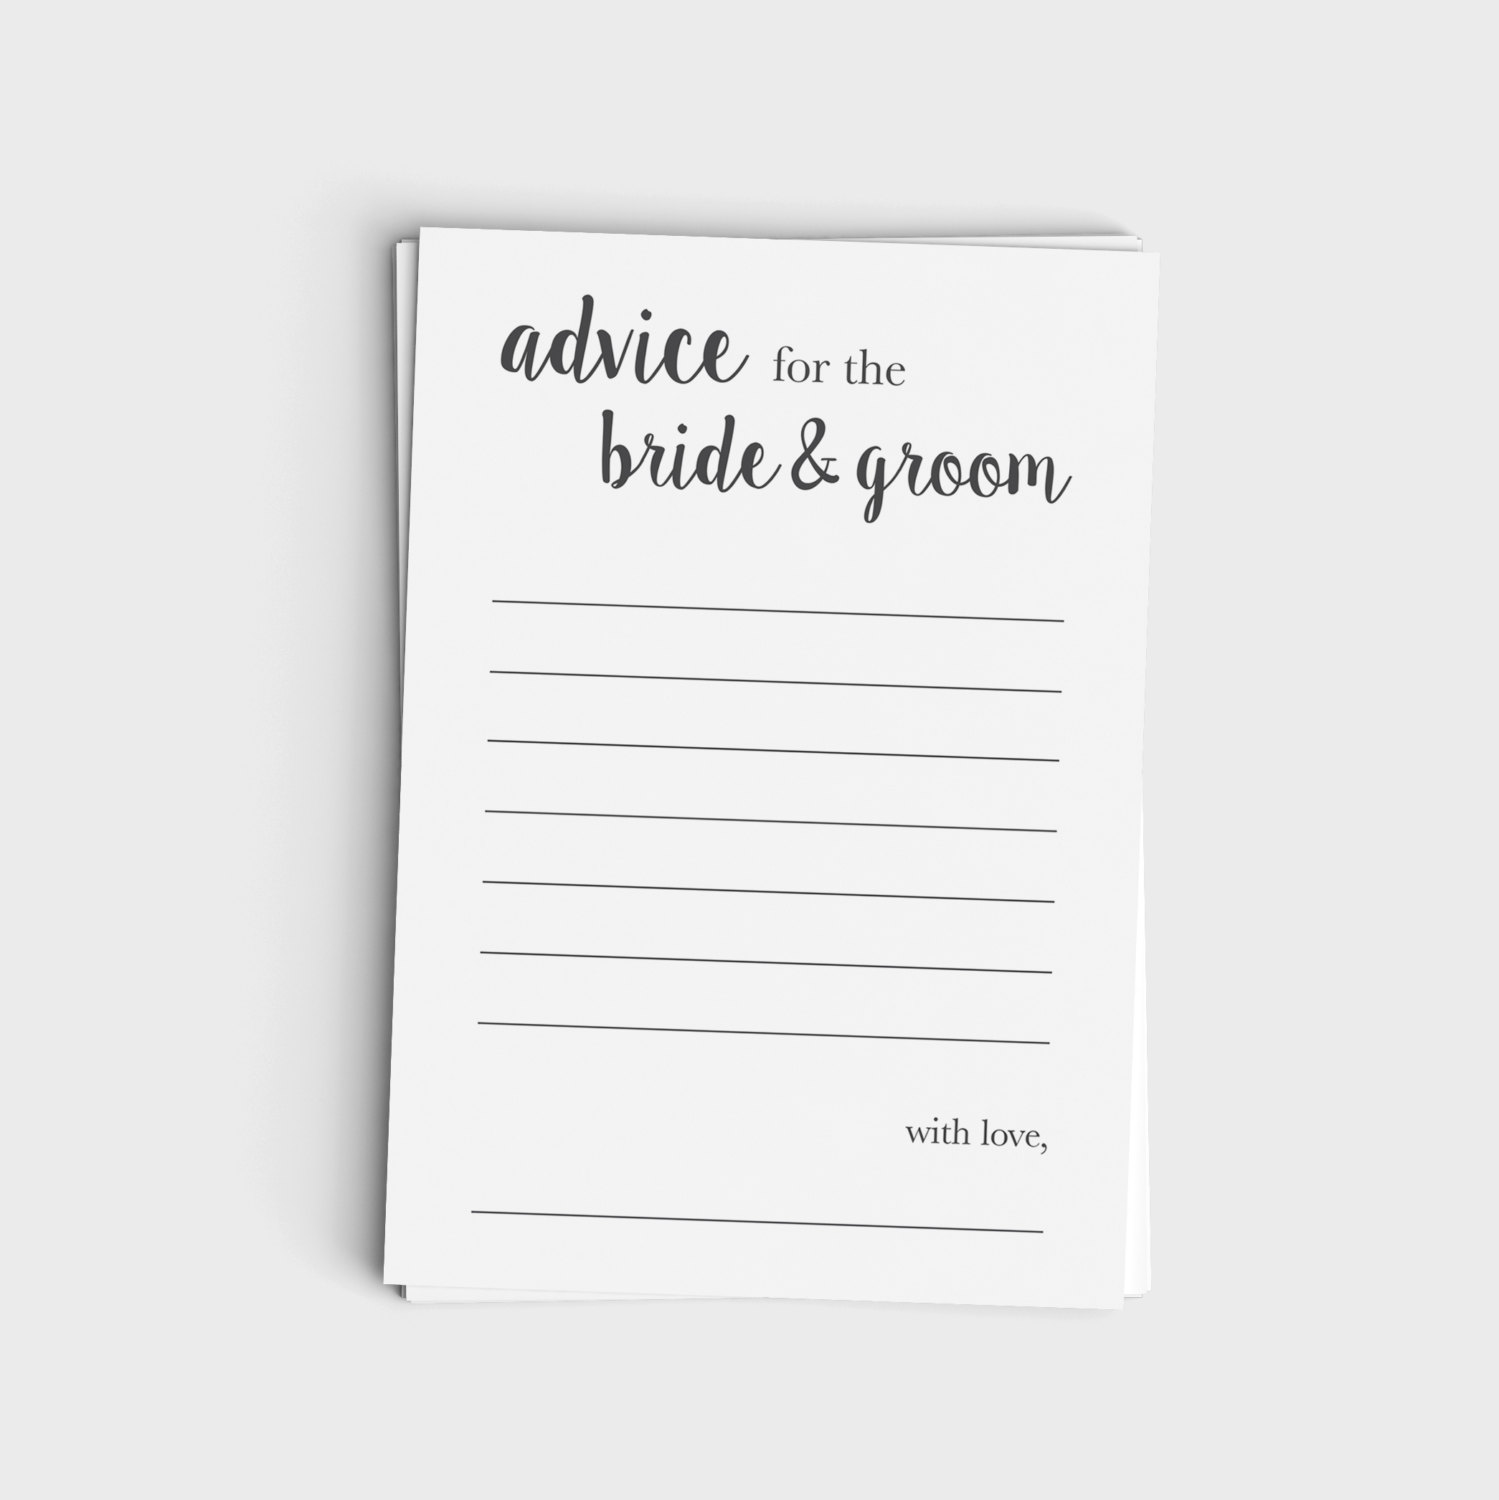 Advice Card for Bride & Groom - Minimalist Modern Gray Design